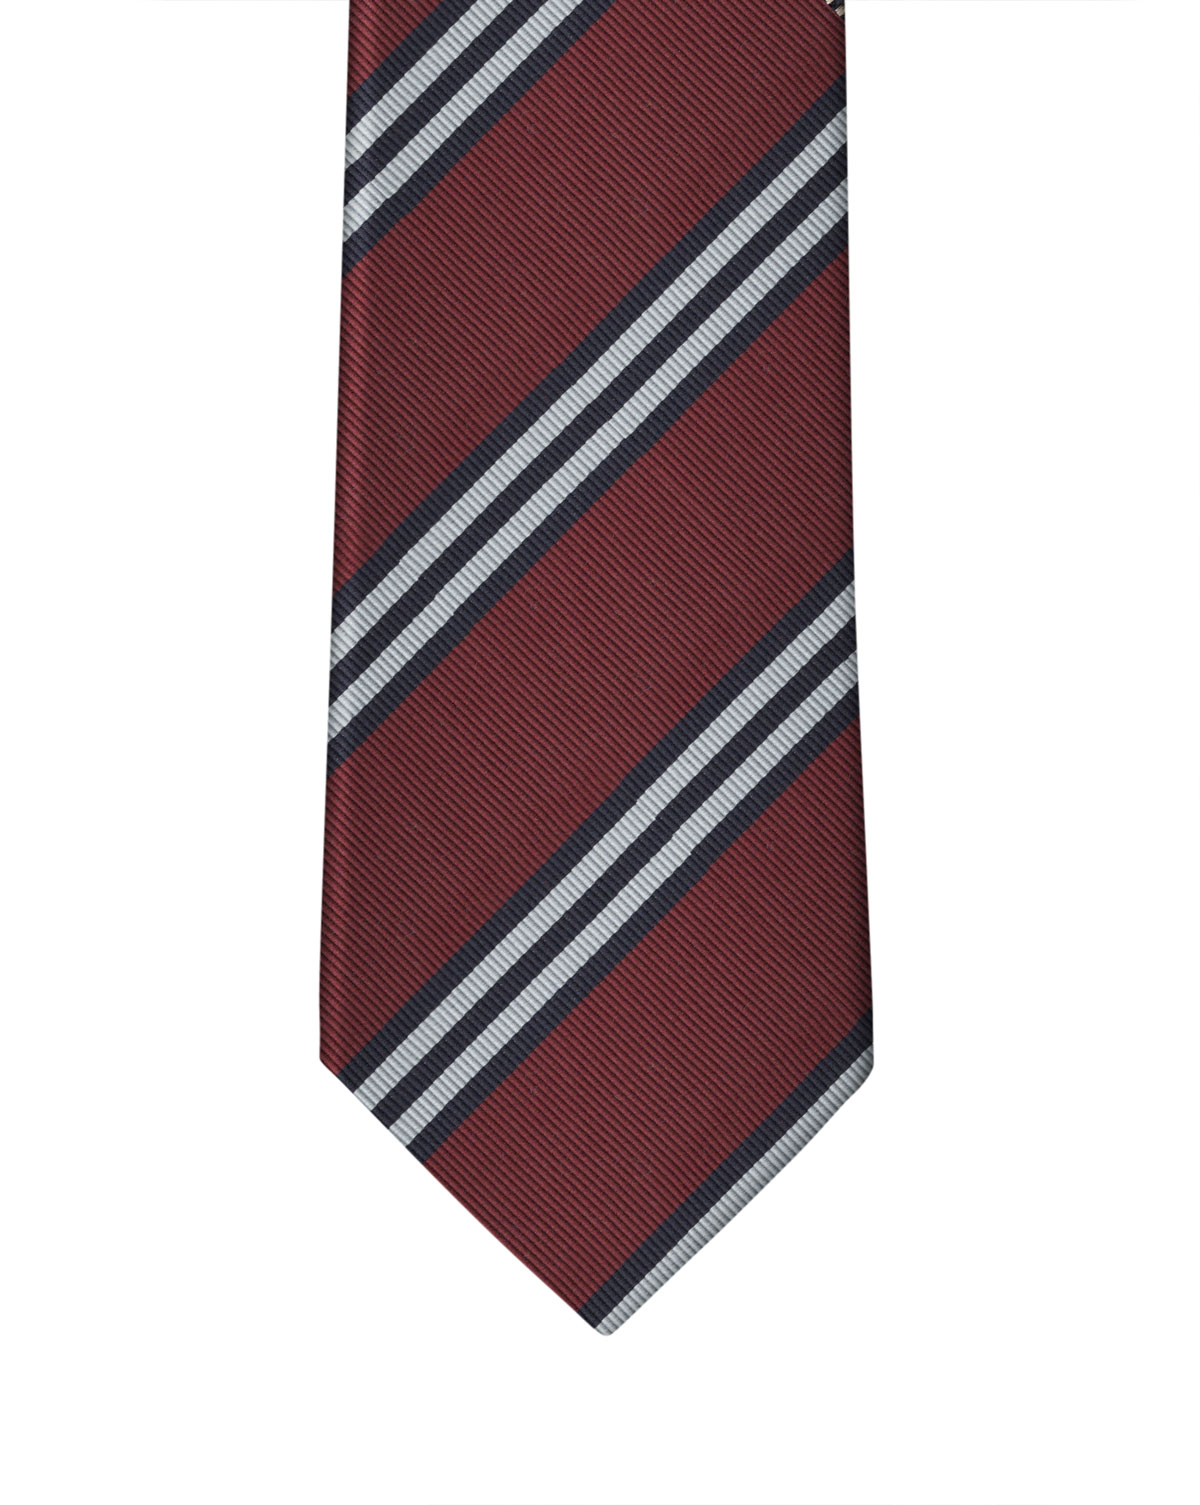 Wine, Navy, & White Classic Rep Stripe Necktie